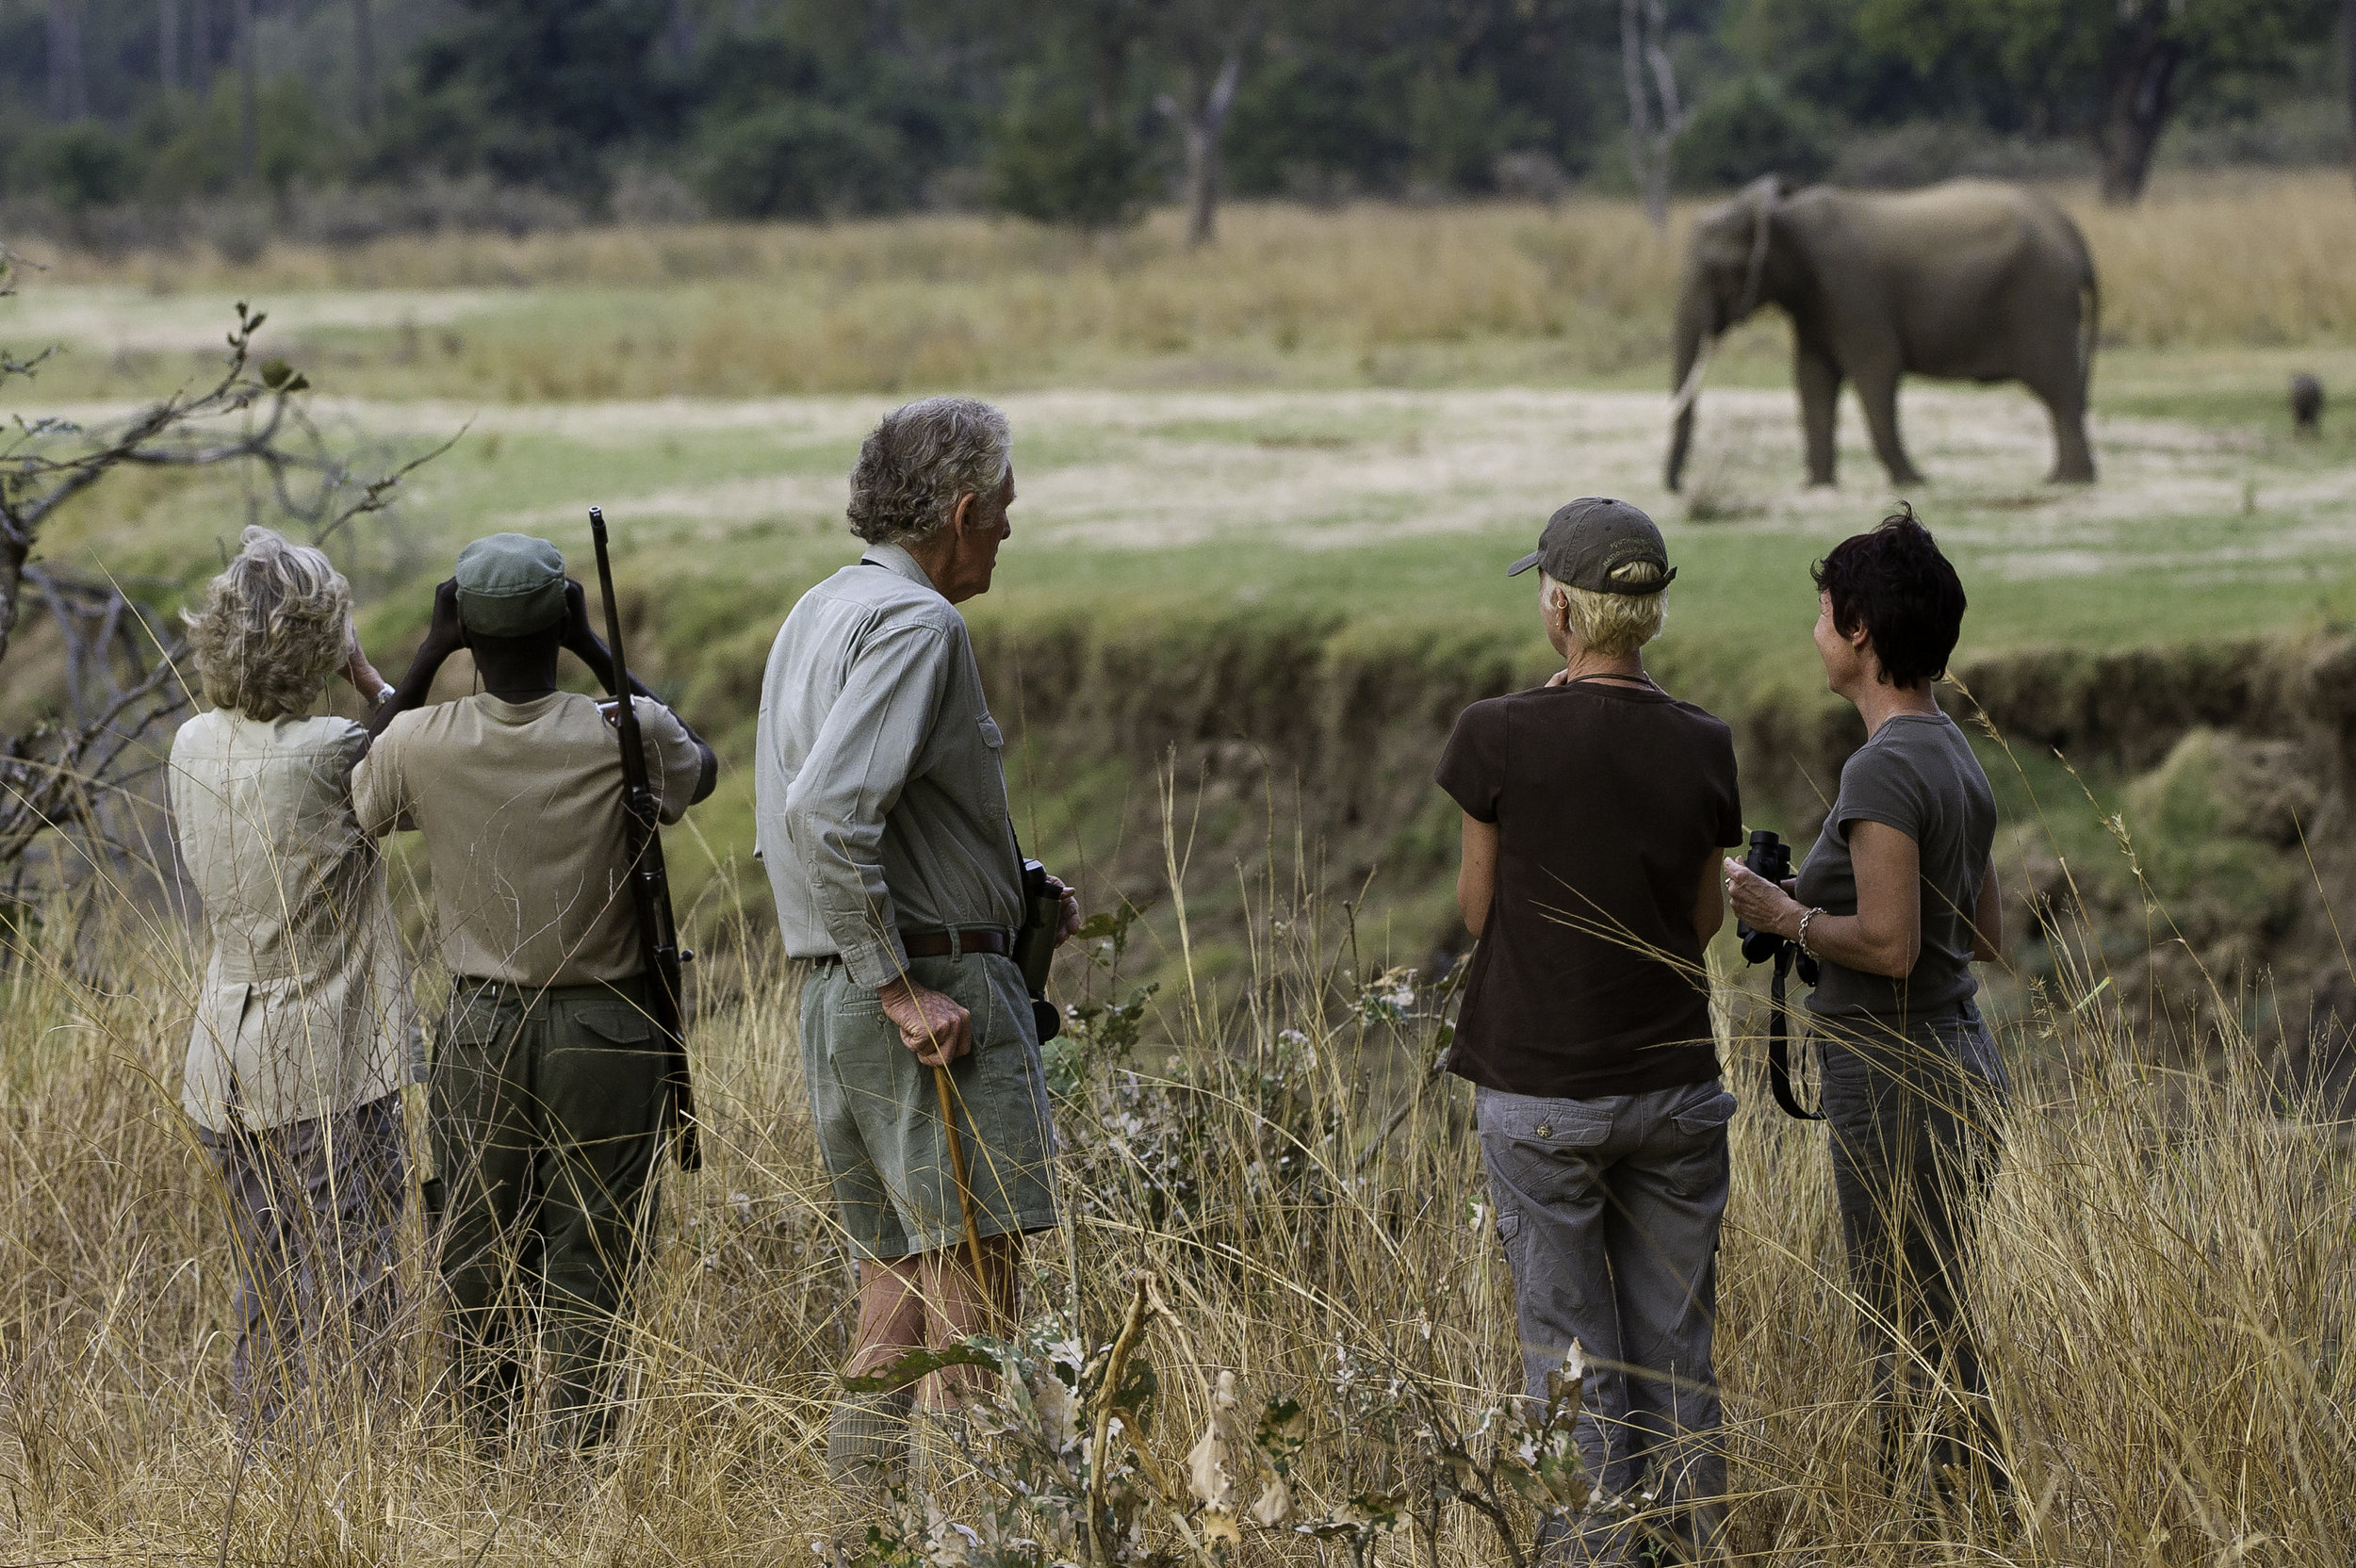 the ultimate walking safari - walking safaris